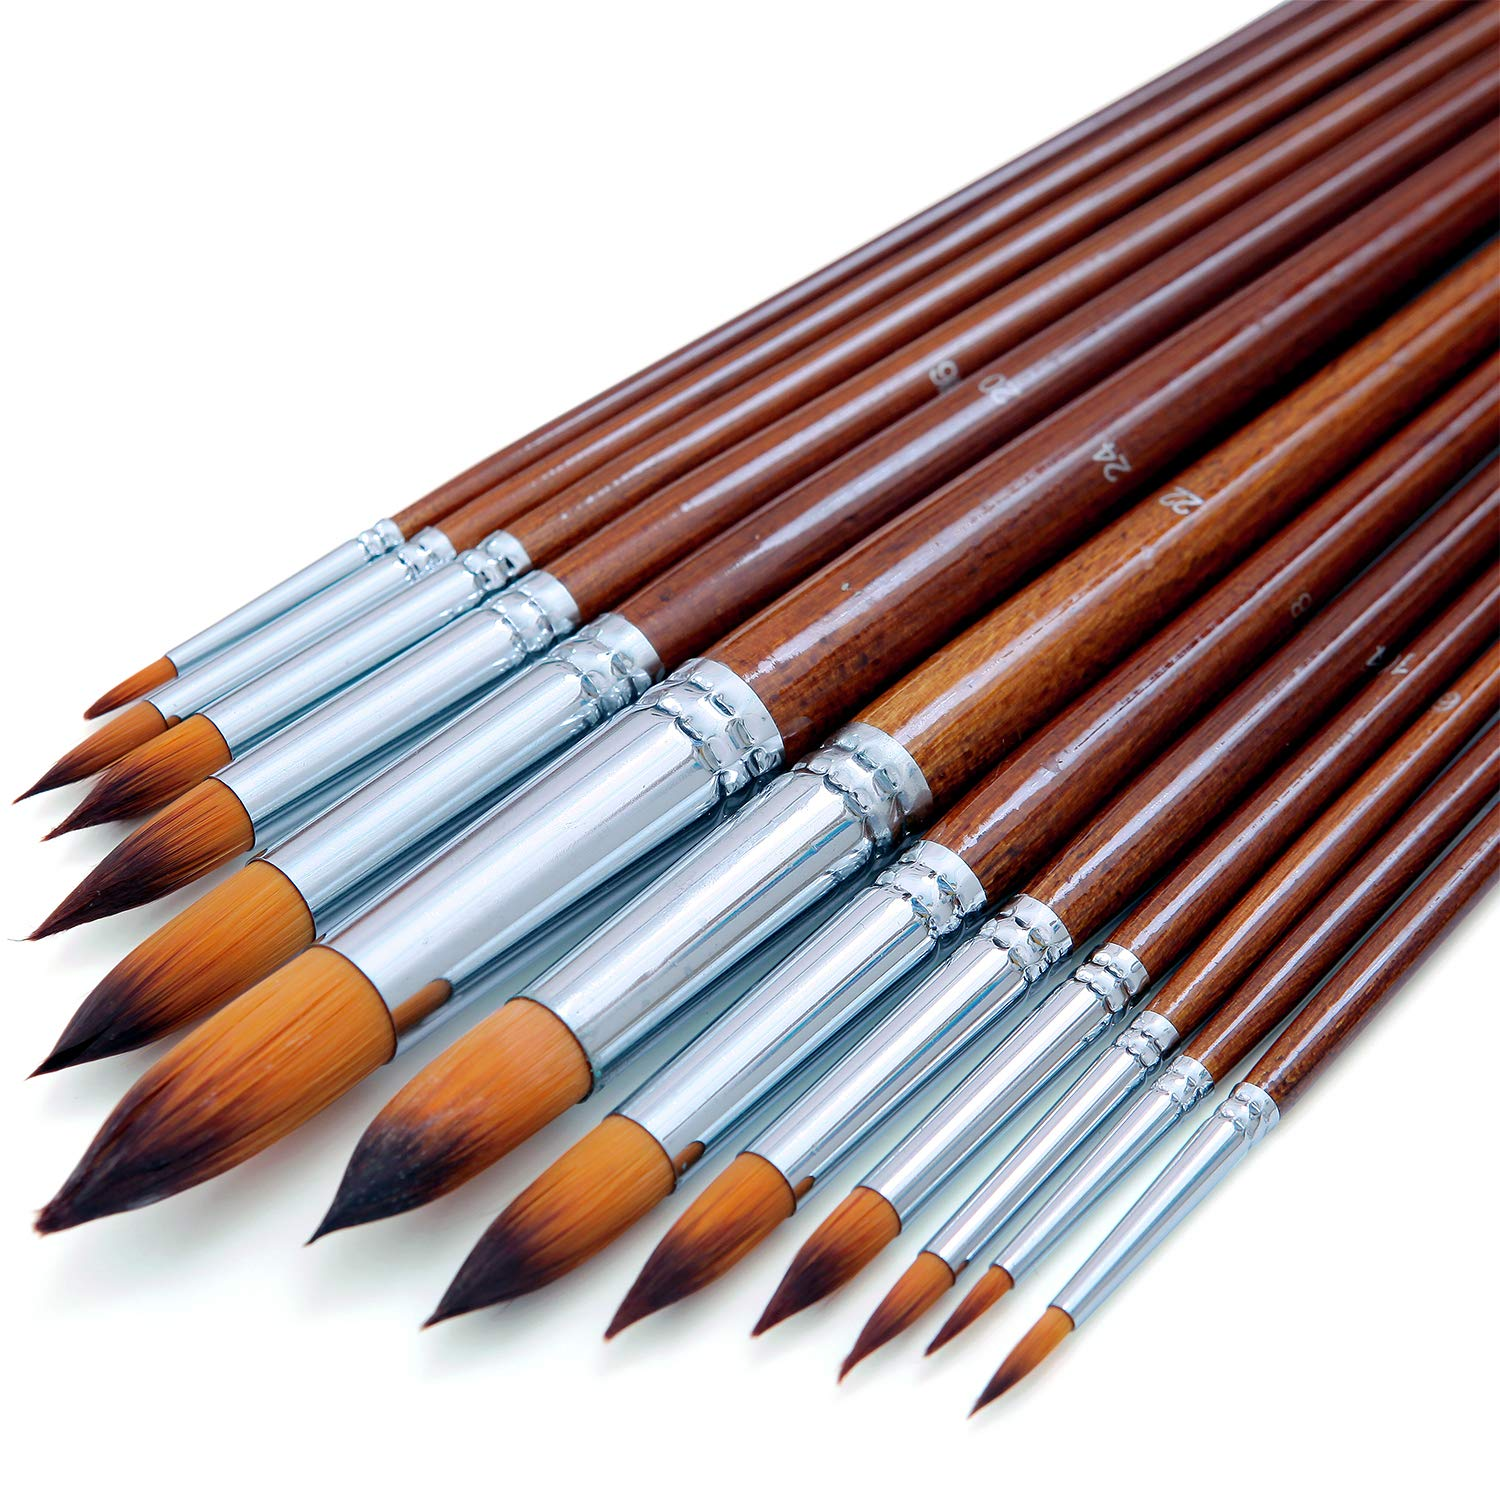 Artist Watercolor Paint Brushes Set 13pcs - Round Pointed Tip Soft Anti-Shedding Nylon Hair Wood Long Handle - Detail Paint Brush for Watercolor, Acrylics, Ink, Gouache, Oil, Tempera, Paint by Numbers by DUGATO